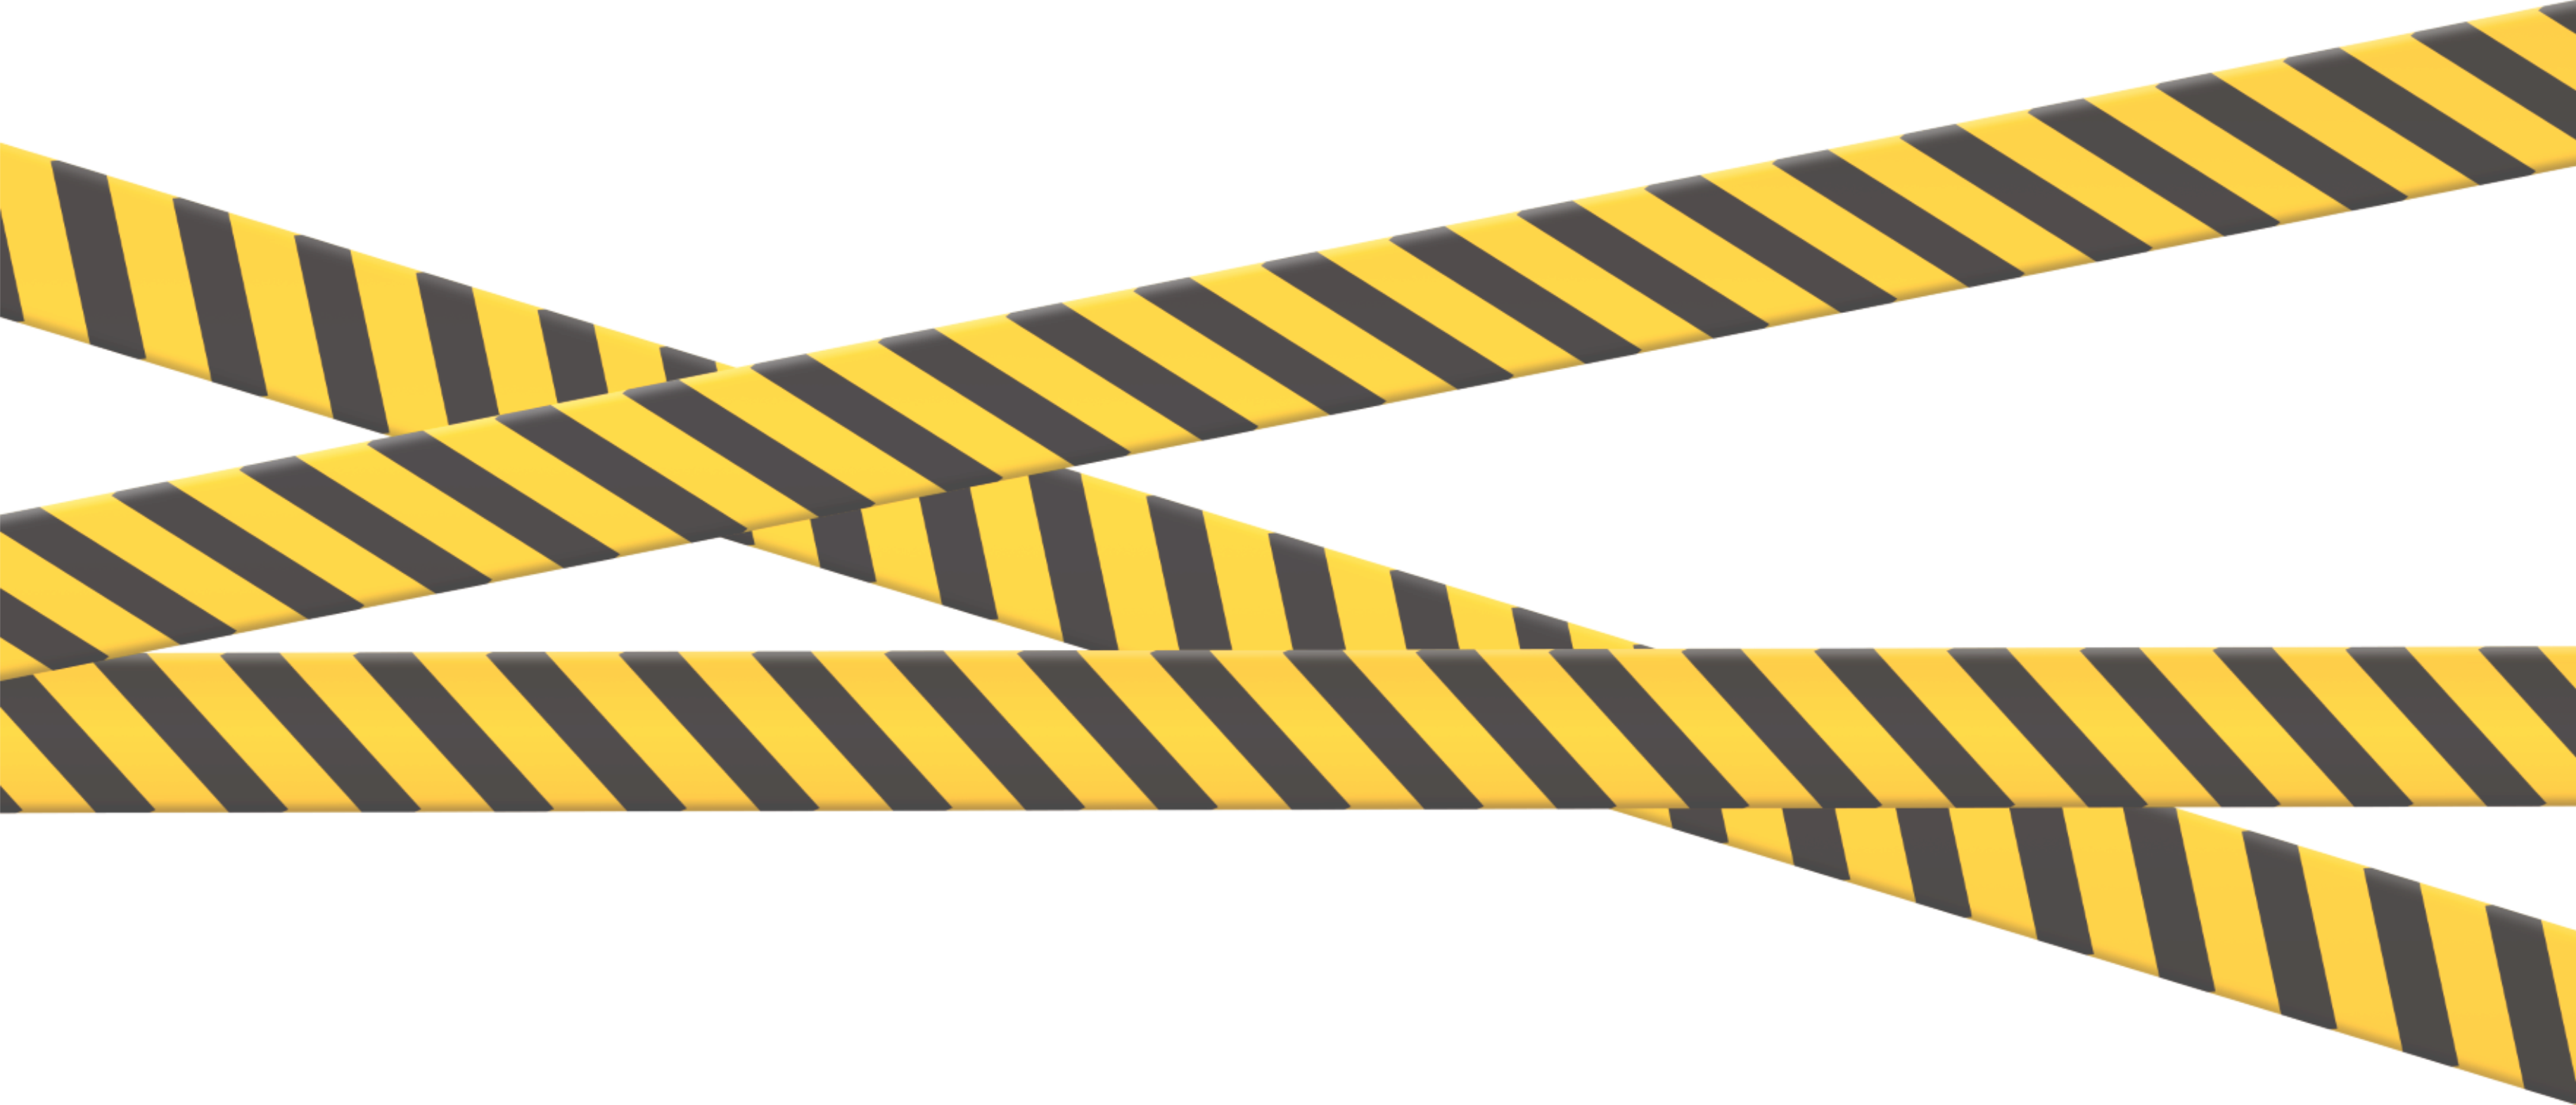 Index of wp content. Construction tape png graphic freeuse stock